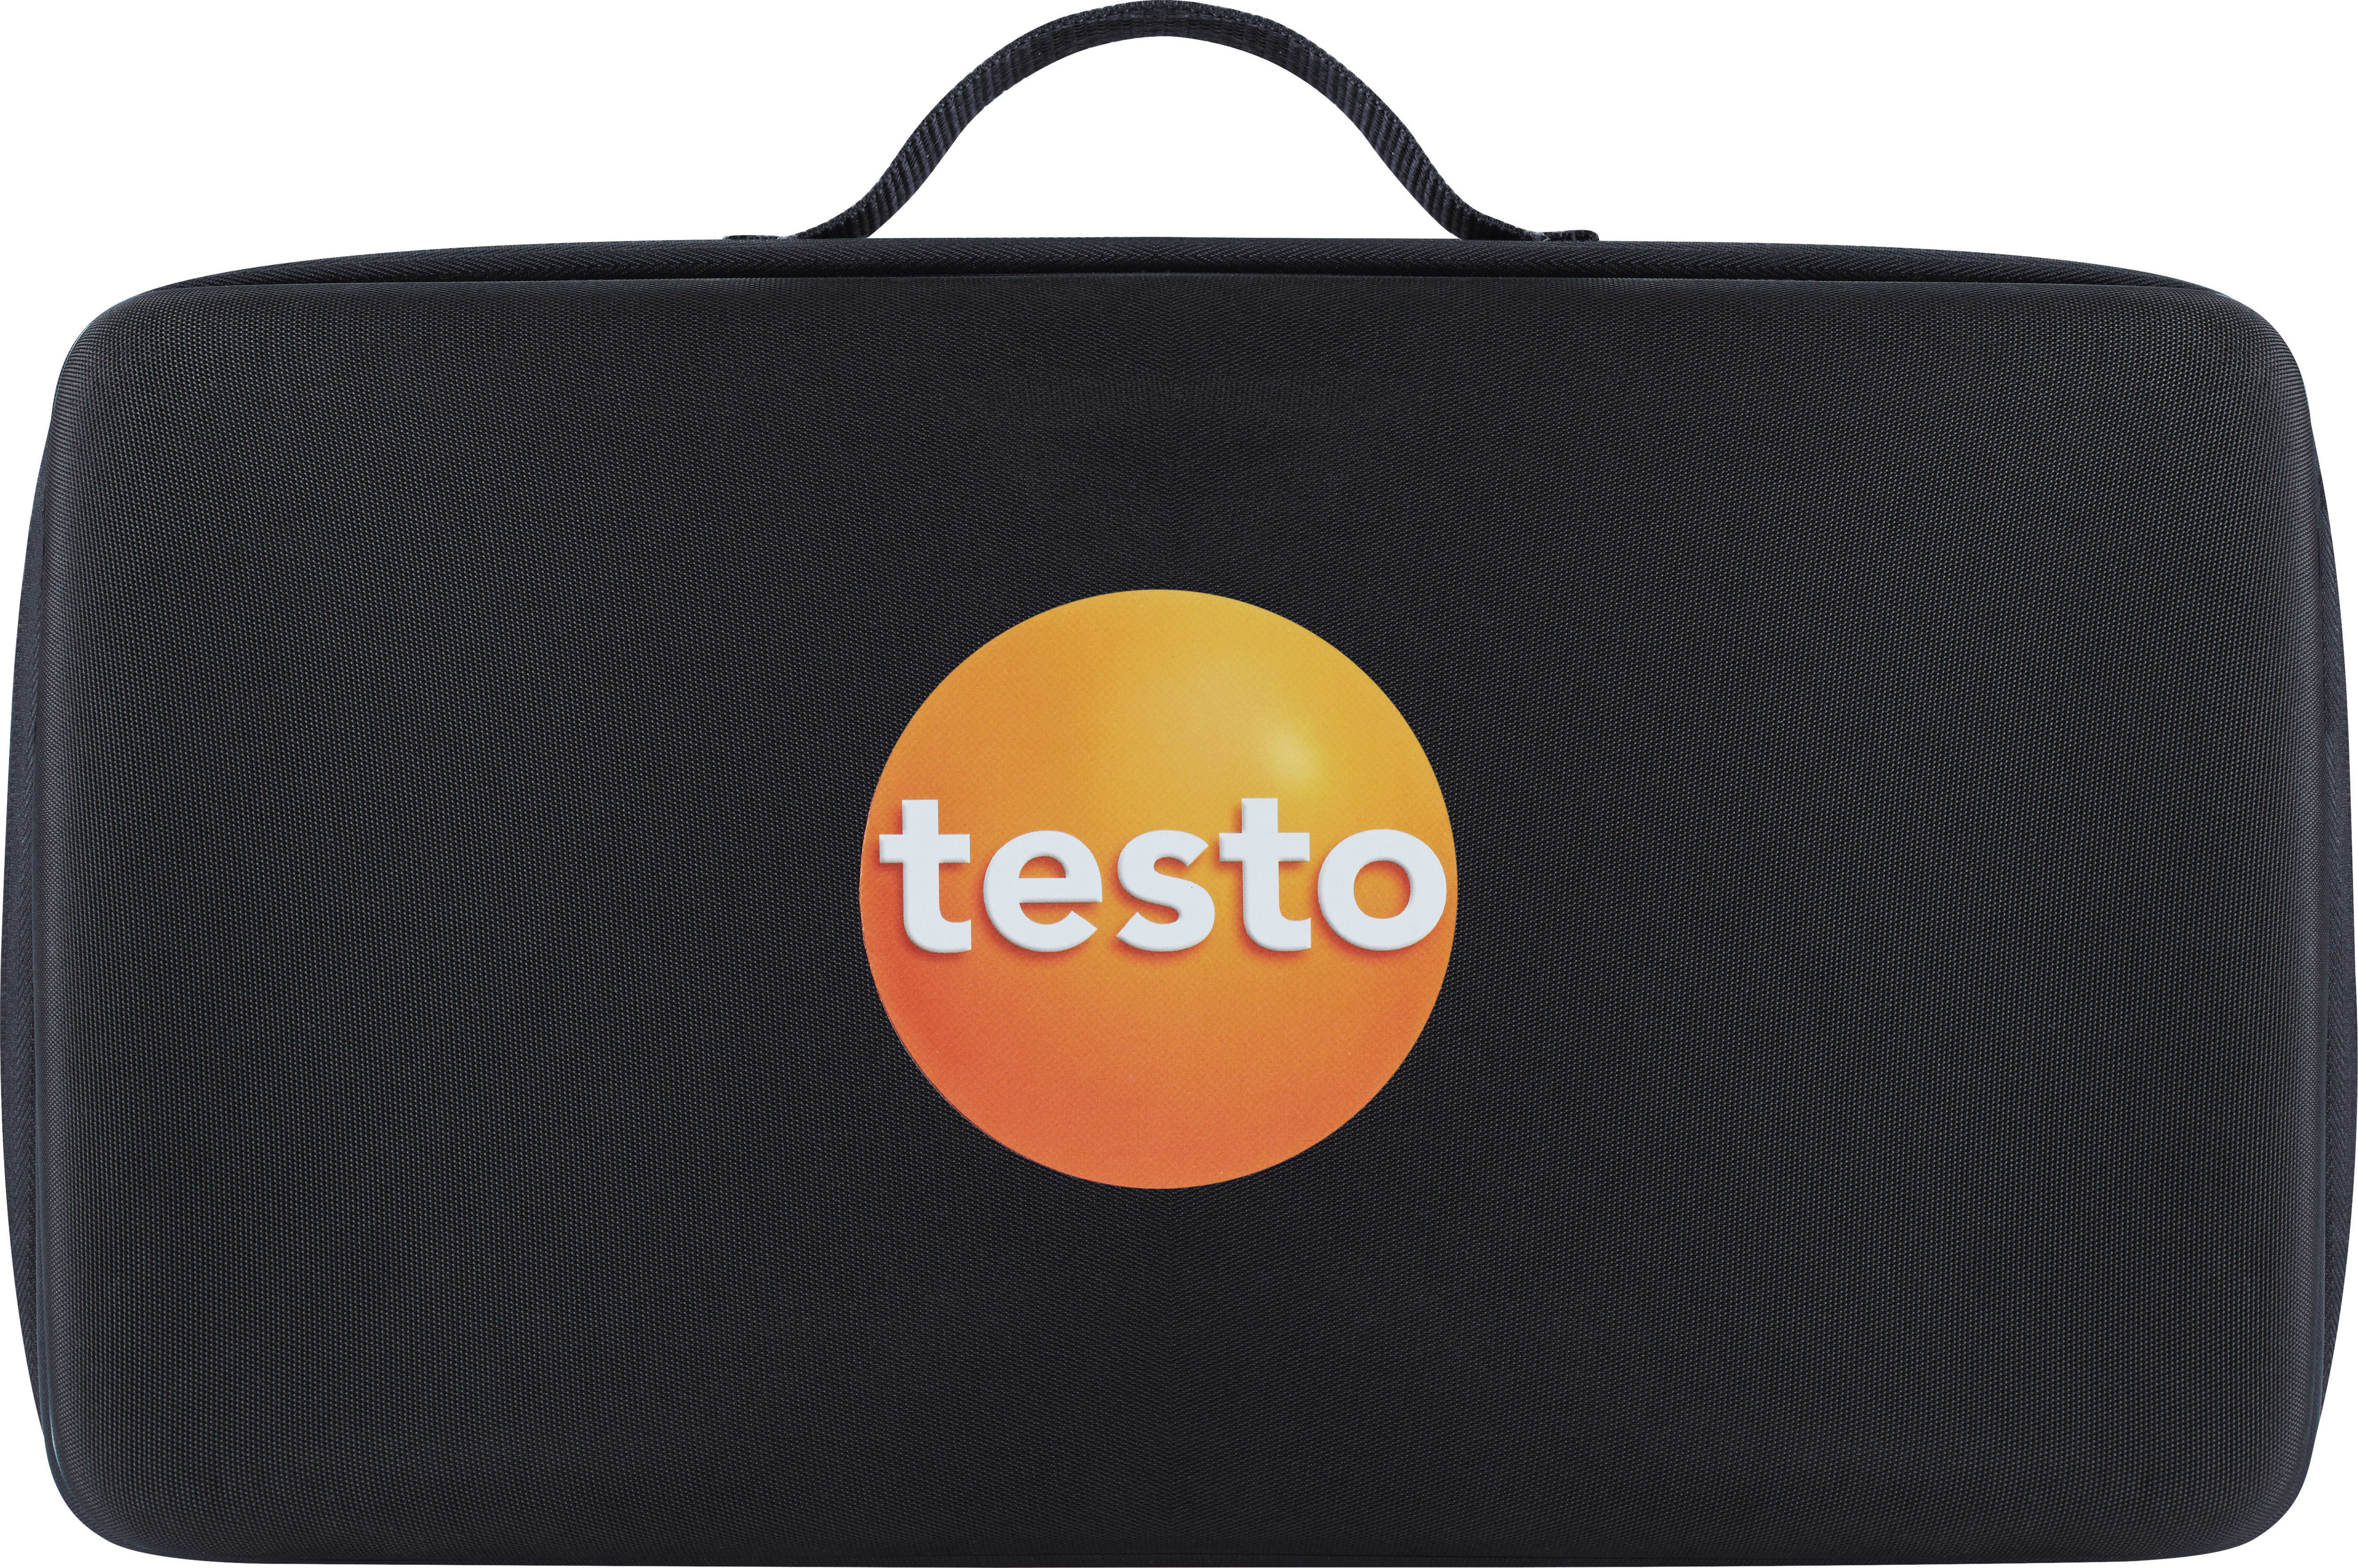 Testo 0516 4401 - Combi-Case for Testo 440 and Multiple Probes